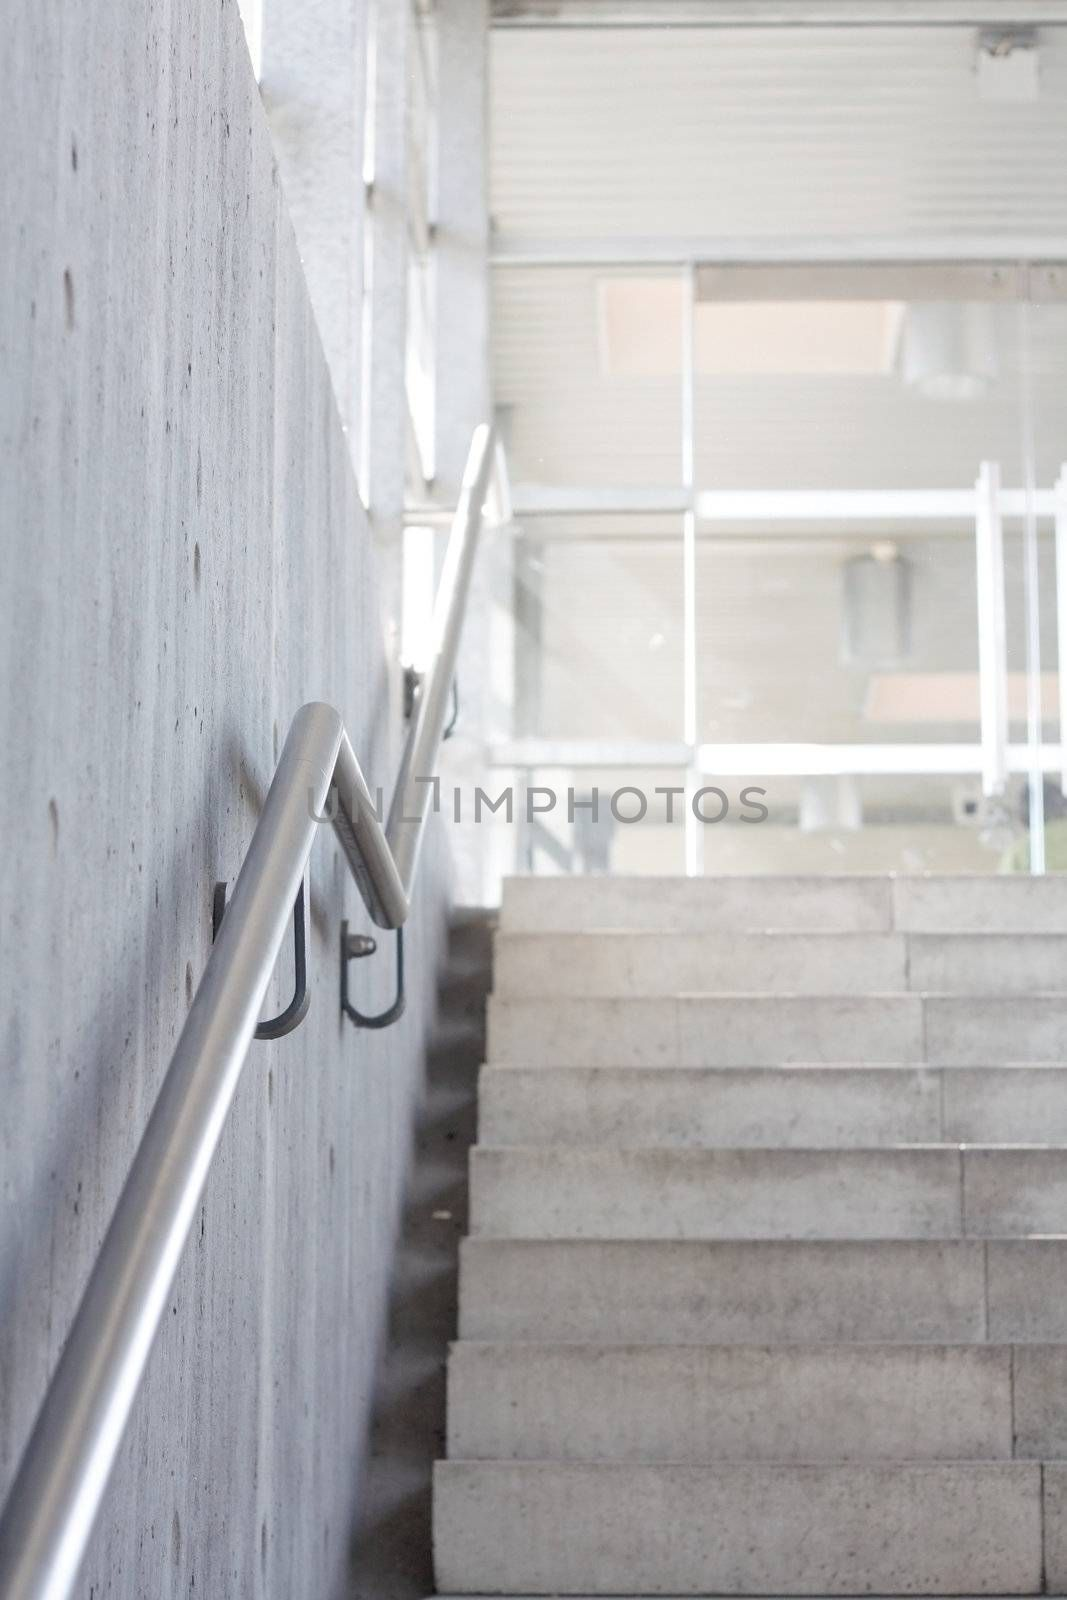 Stairs in a public transportation building